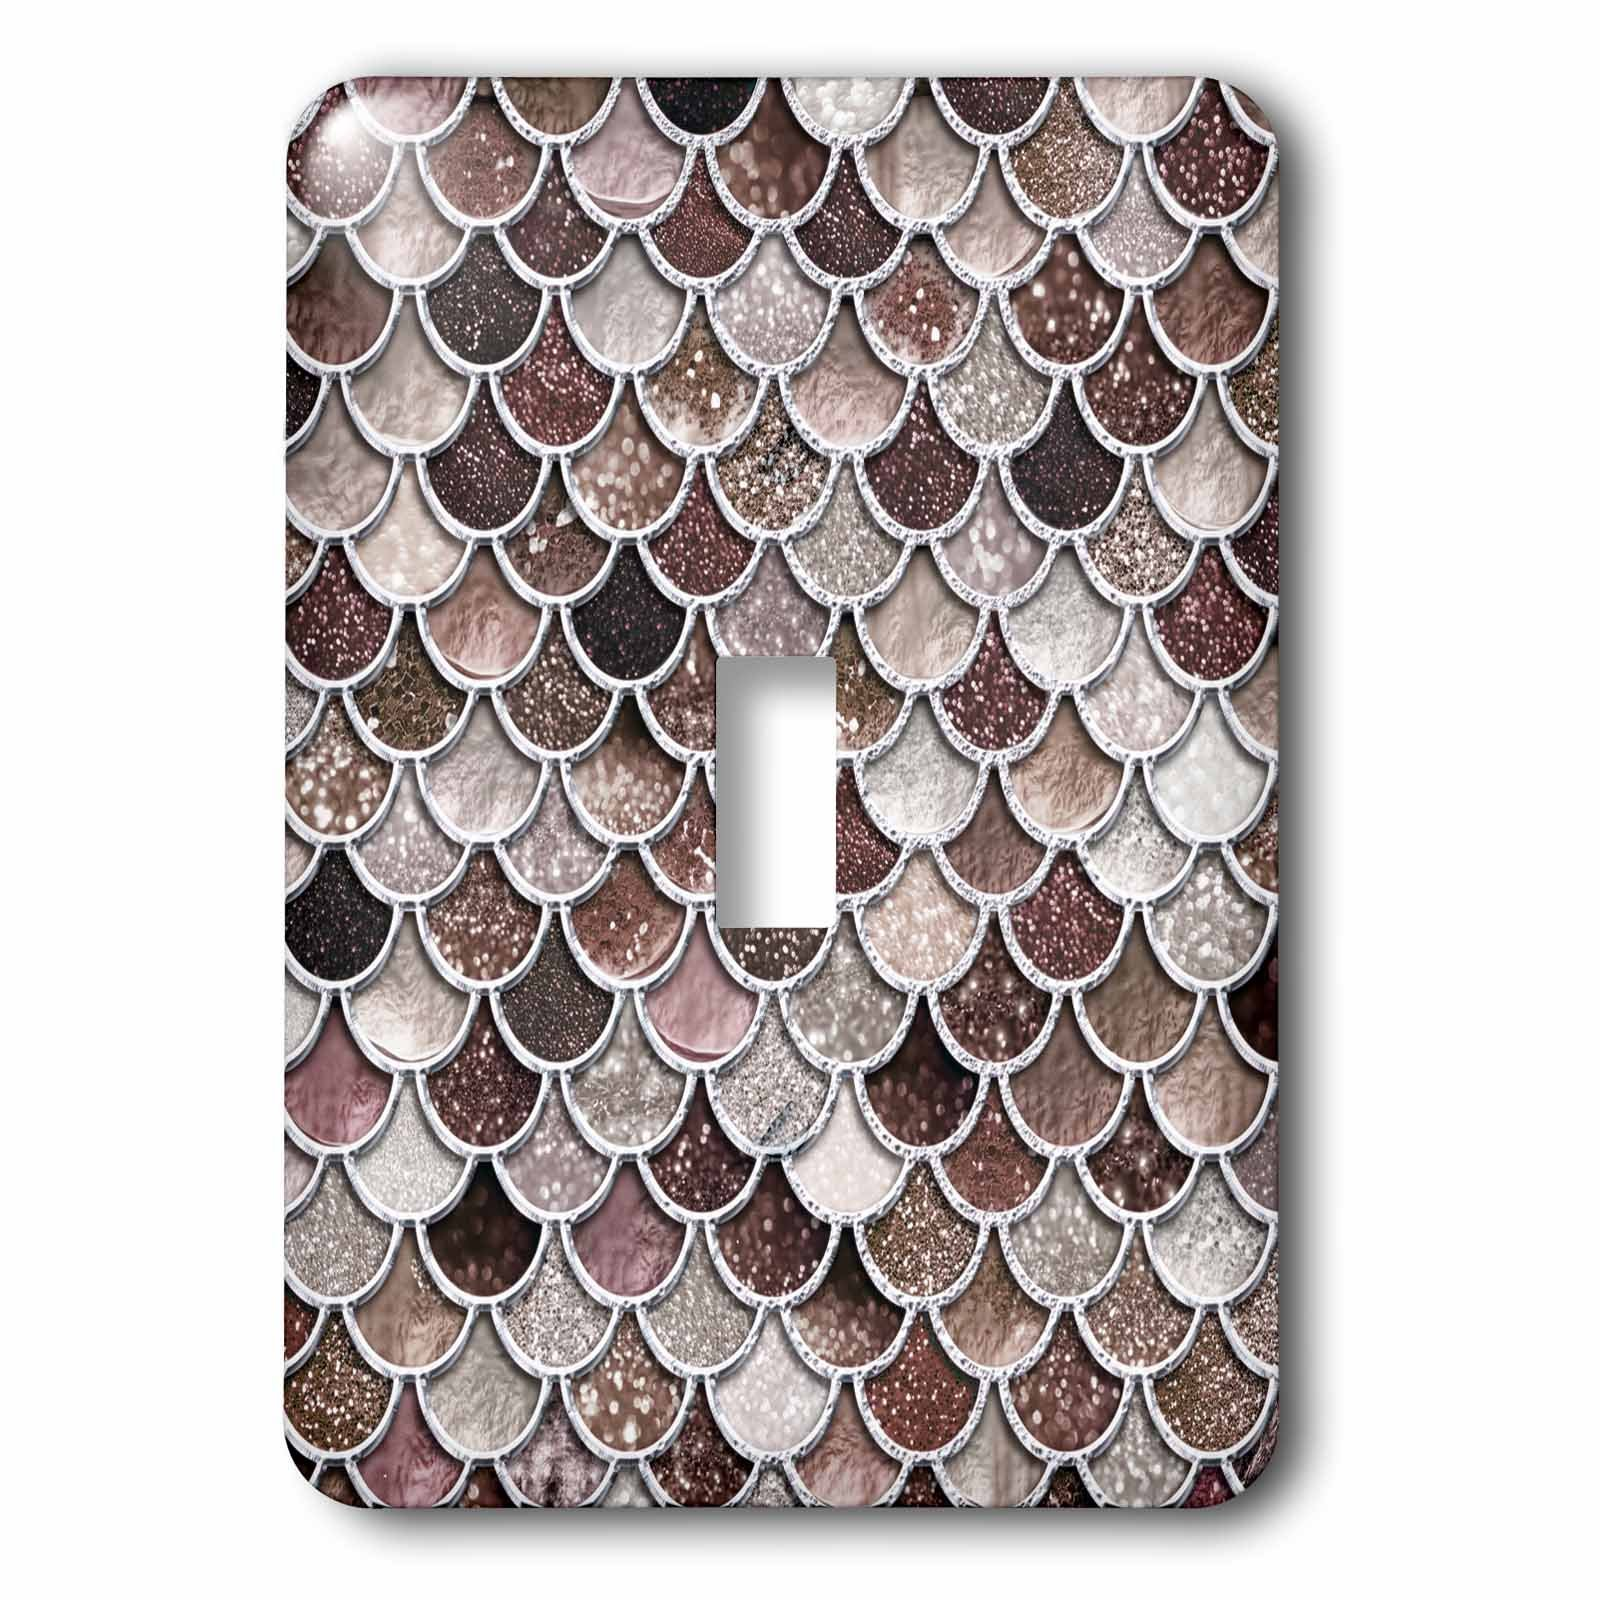 3dRose Uta Naumann Faux Glitter Pattern - Image of Sparkling Brown Luxury Elegant Mermaid Scales Glitter Effect - Light Switch Covers - single toggle switch (lsp_275445_1) by 3dRose (Image #1)